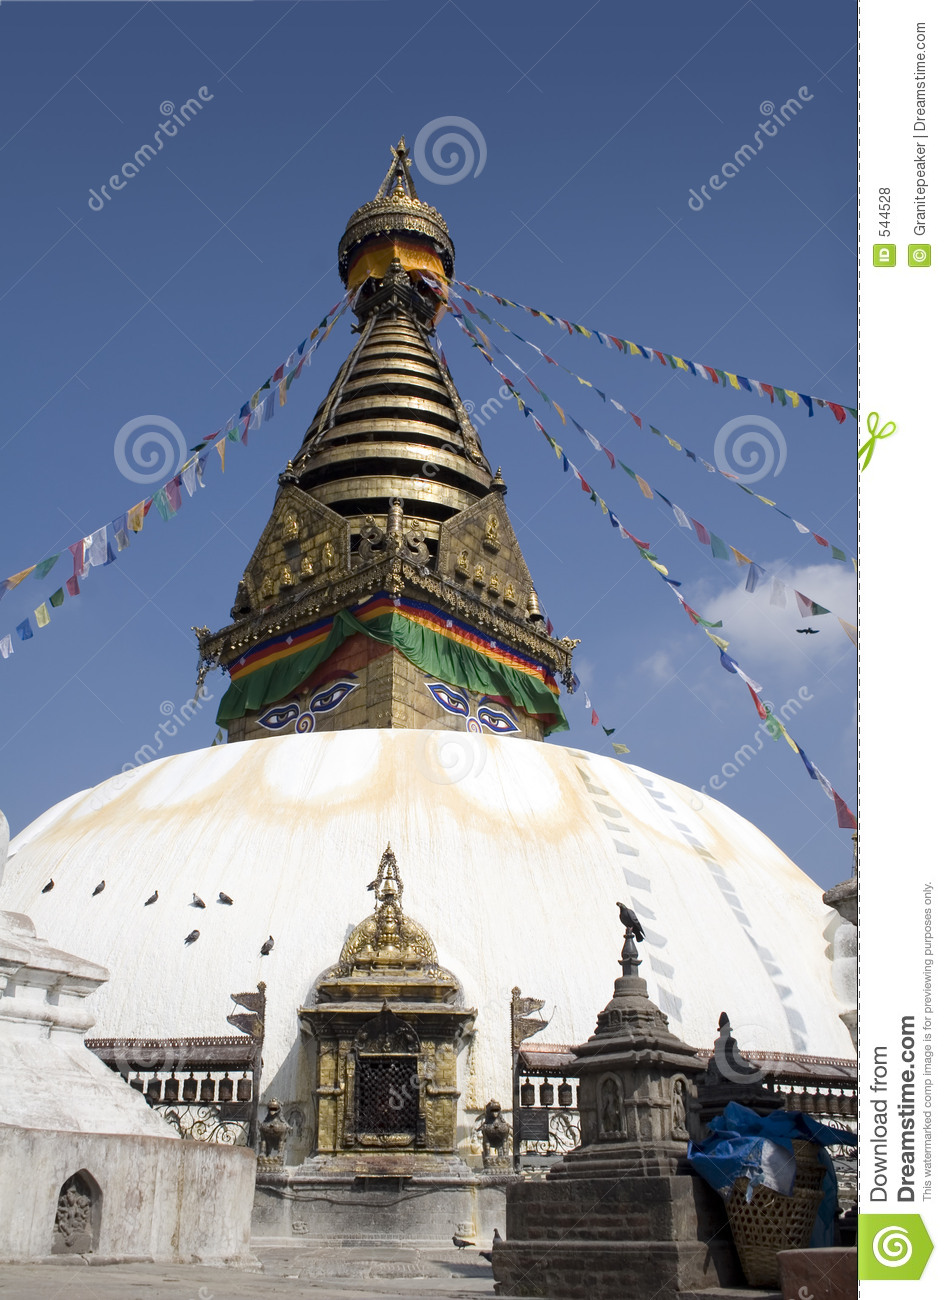 swayambhunath temple - nepal stock photo